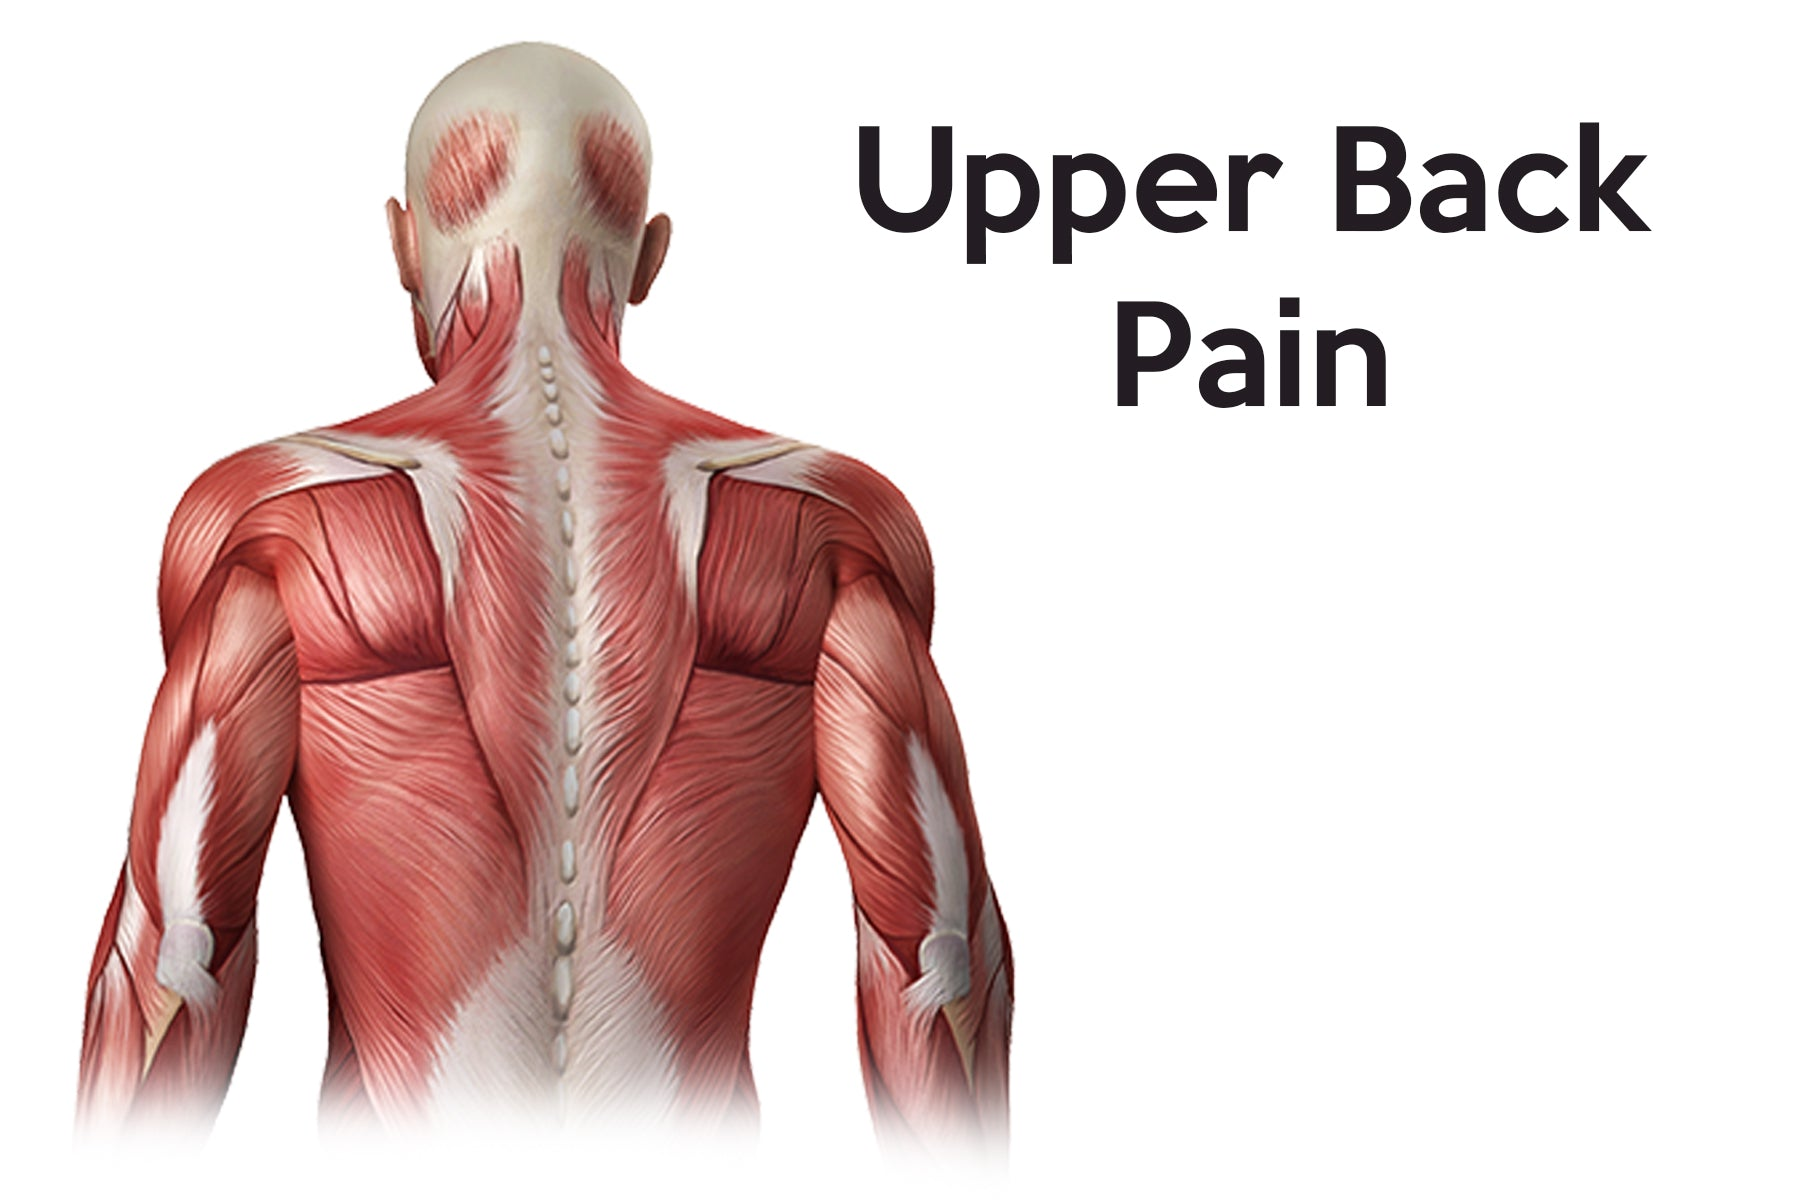 upper-back-pain-graphic.jpg?v=1526412856